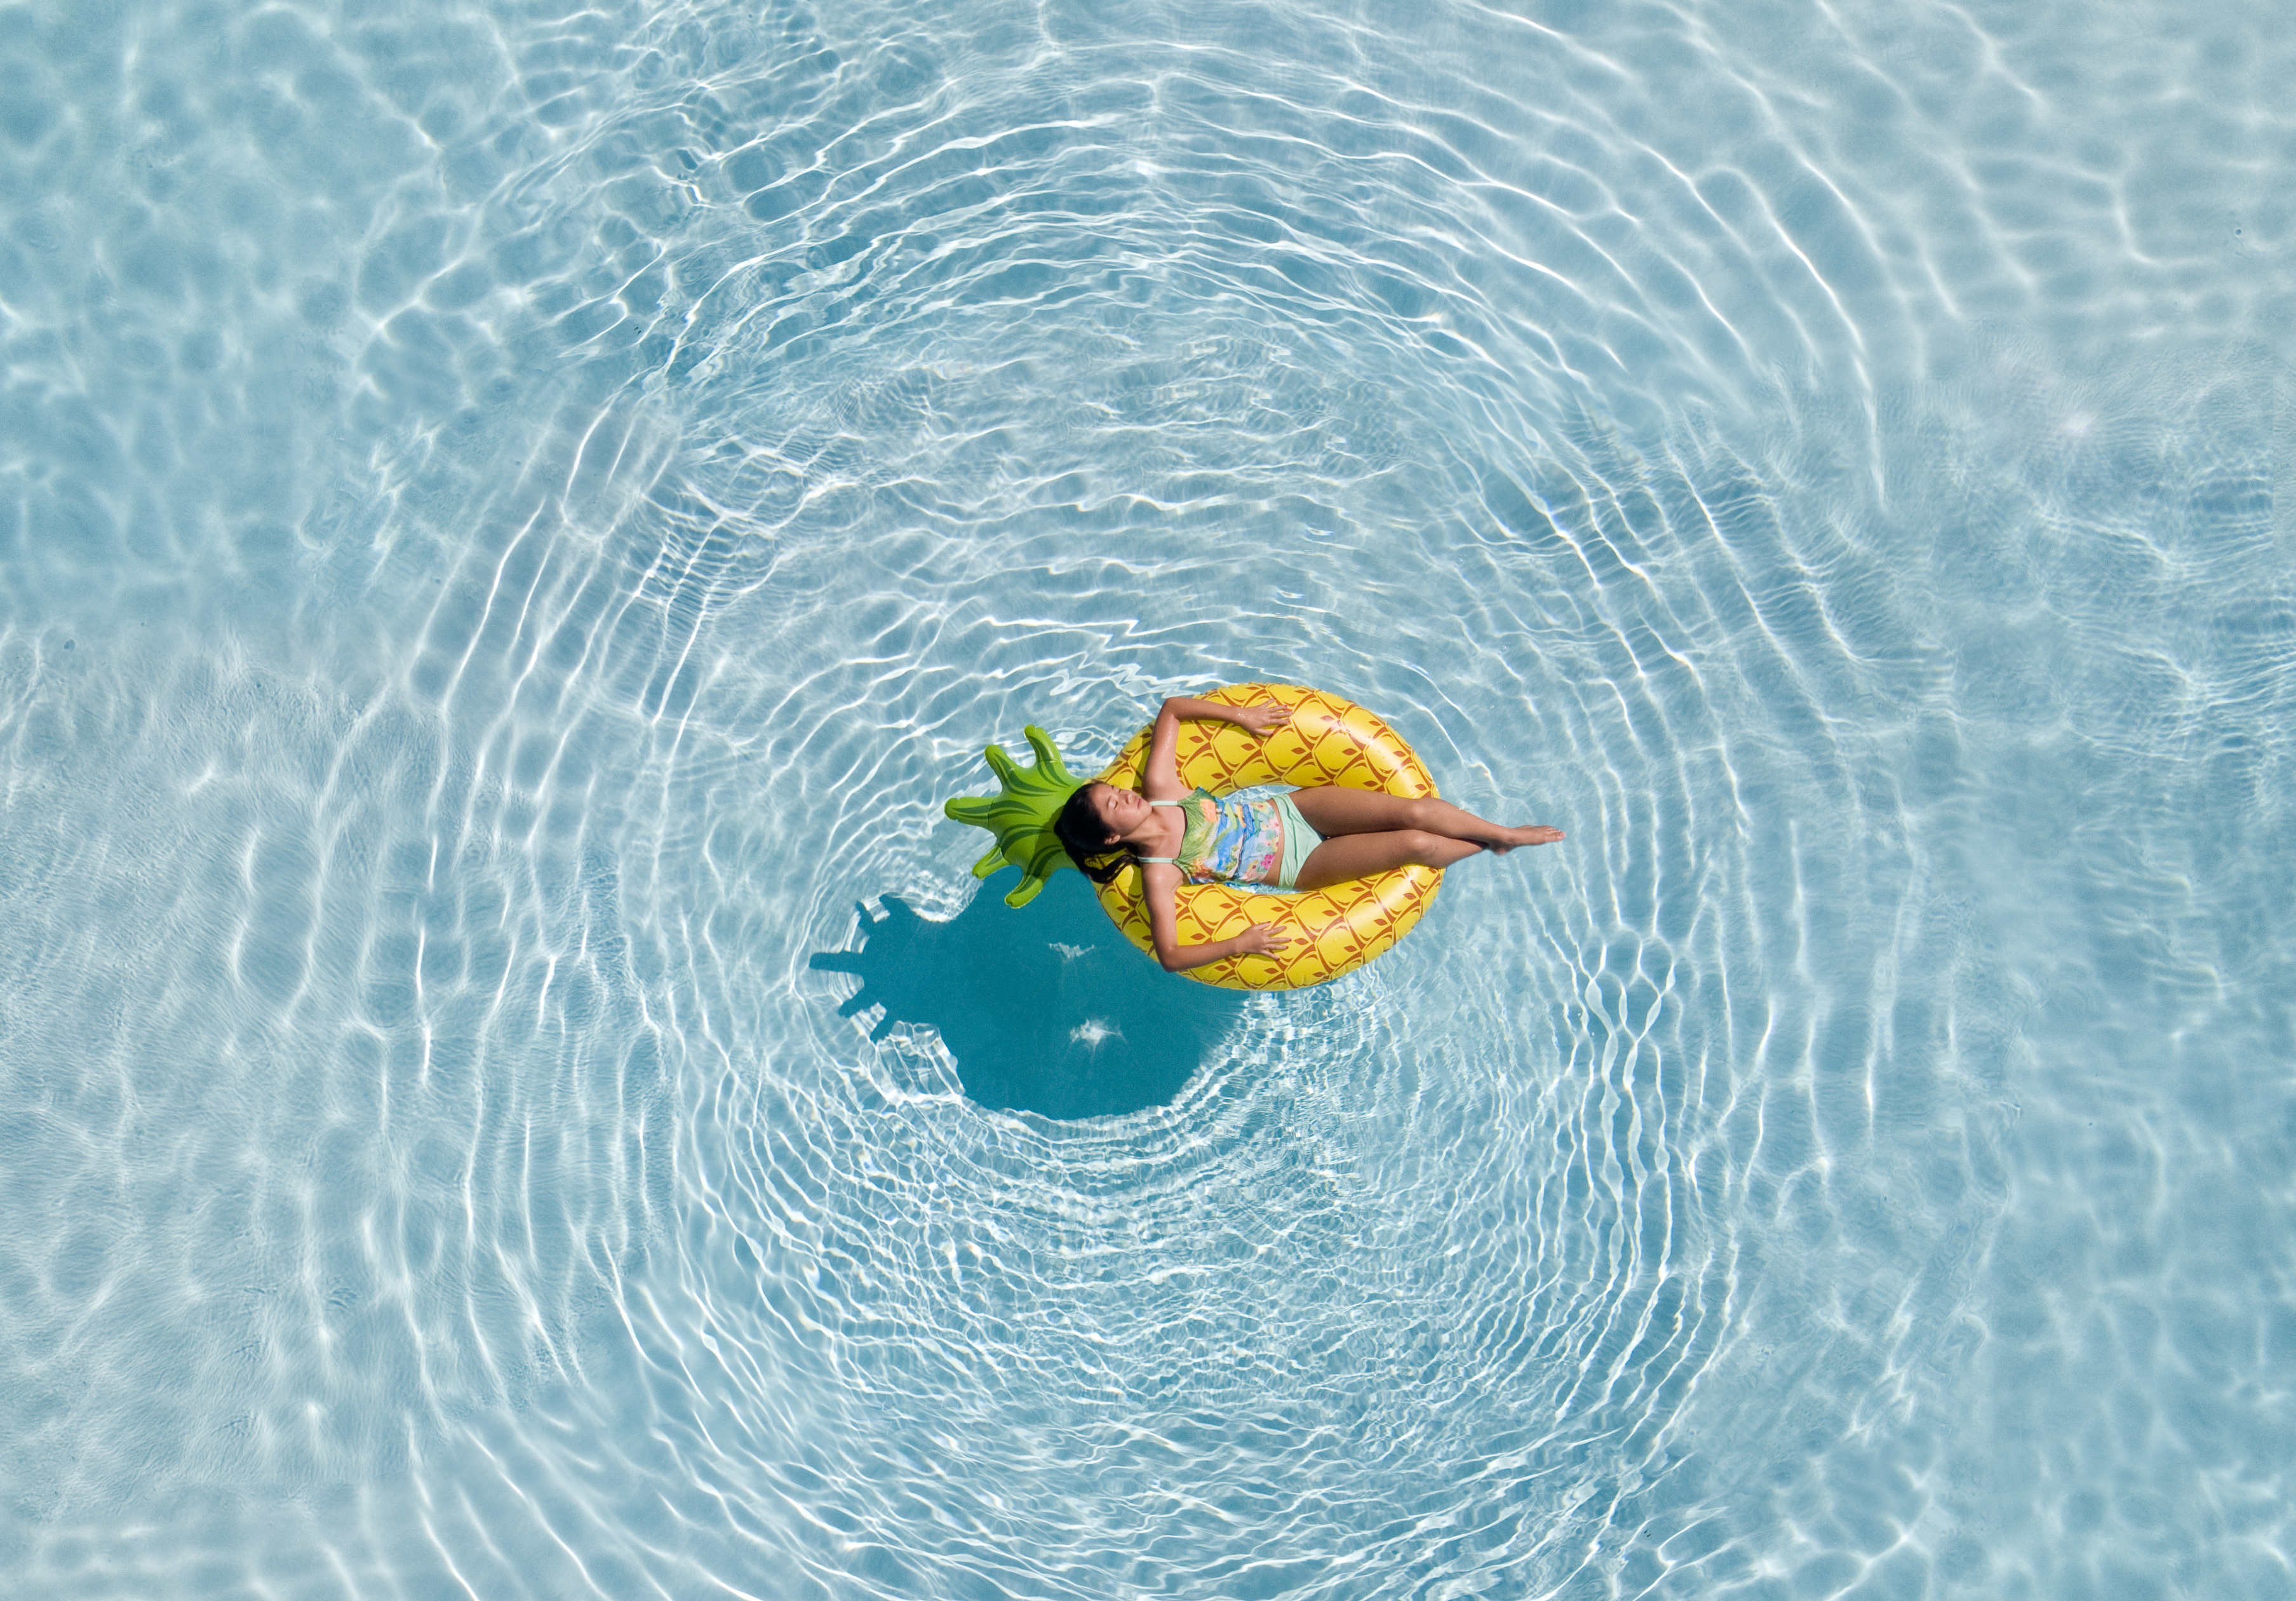 How to Take Care of an Inground Swimming Pool | Home Guides ...